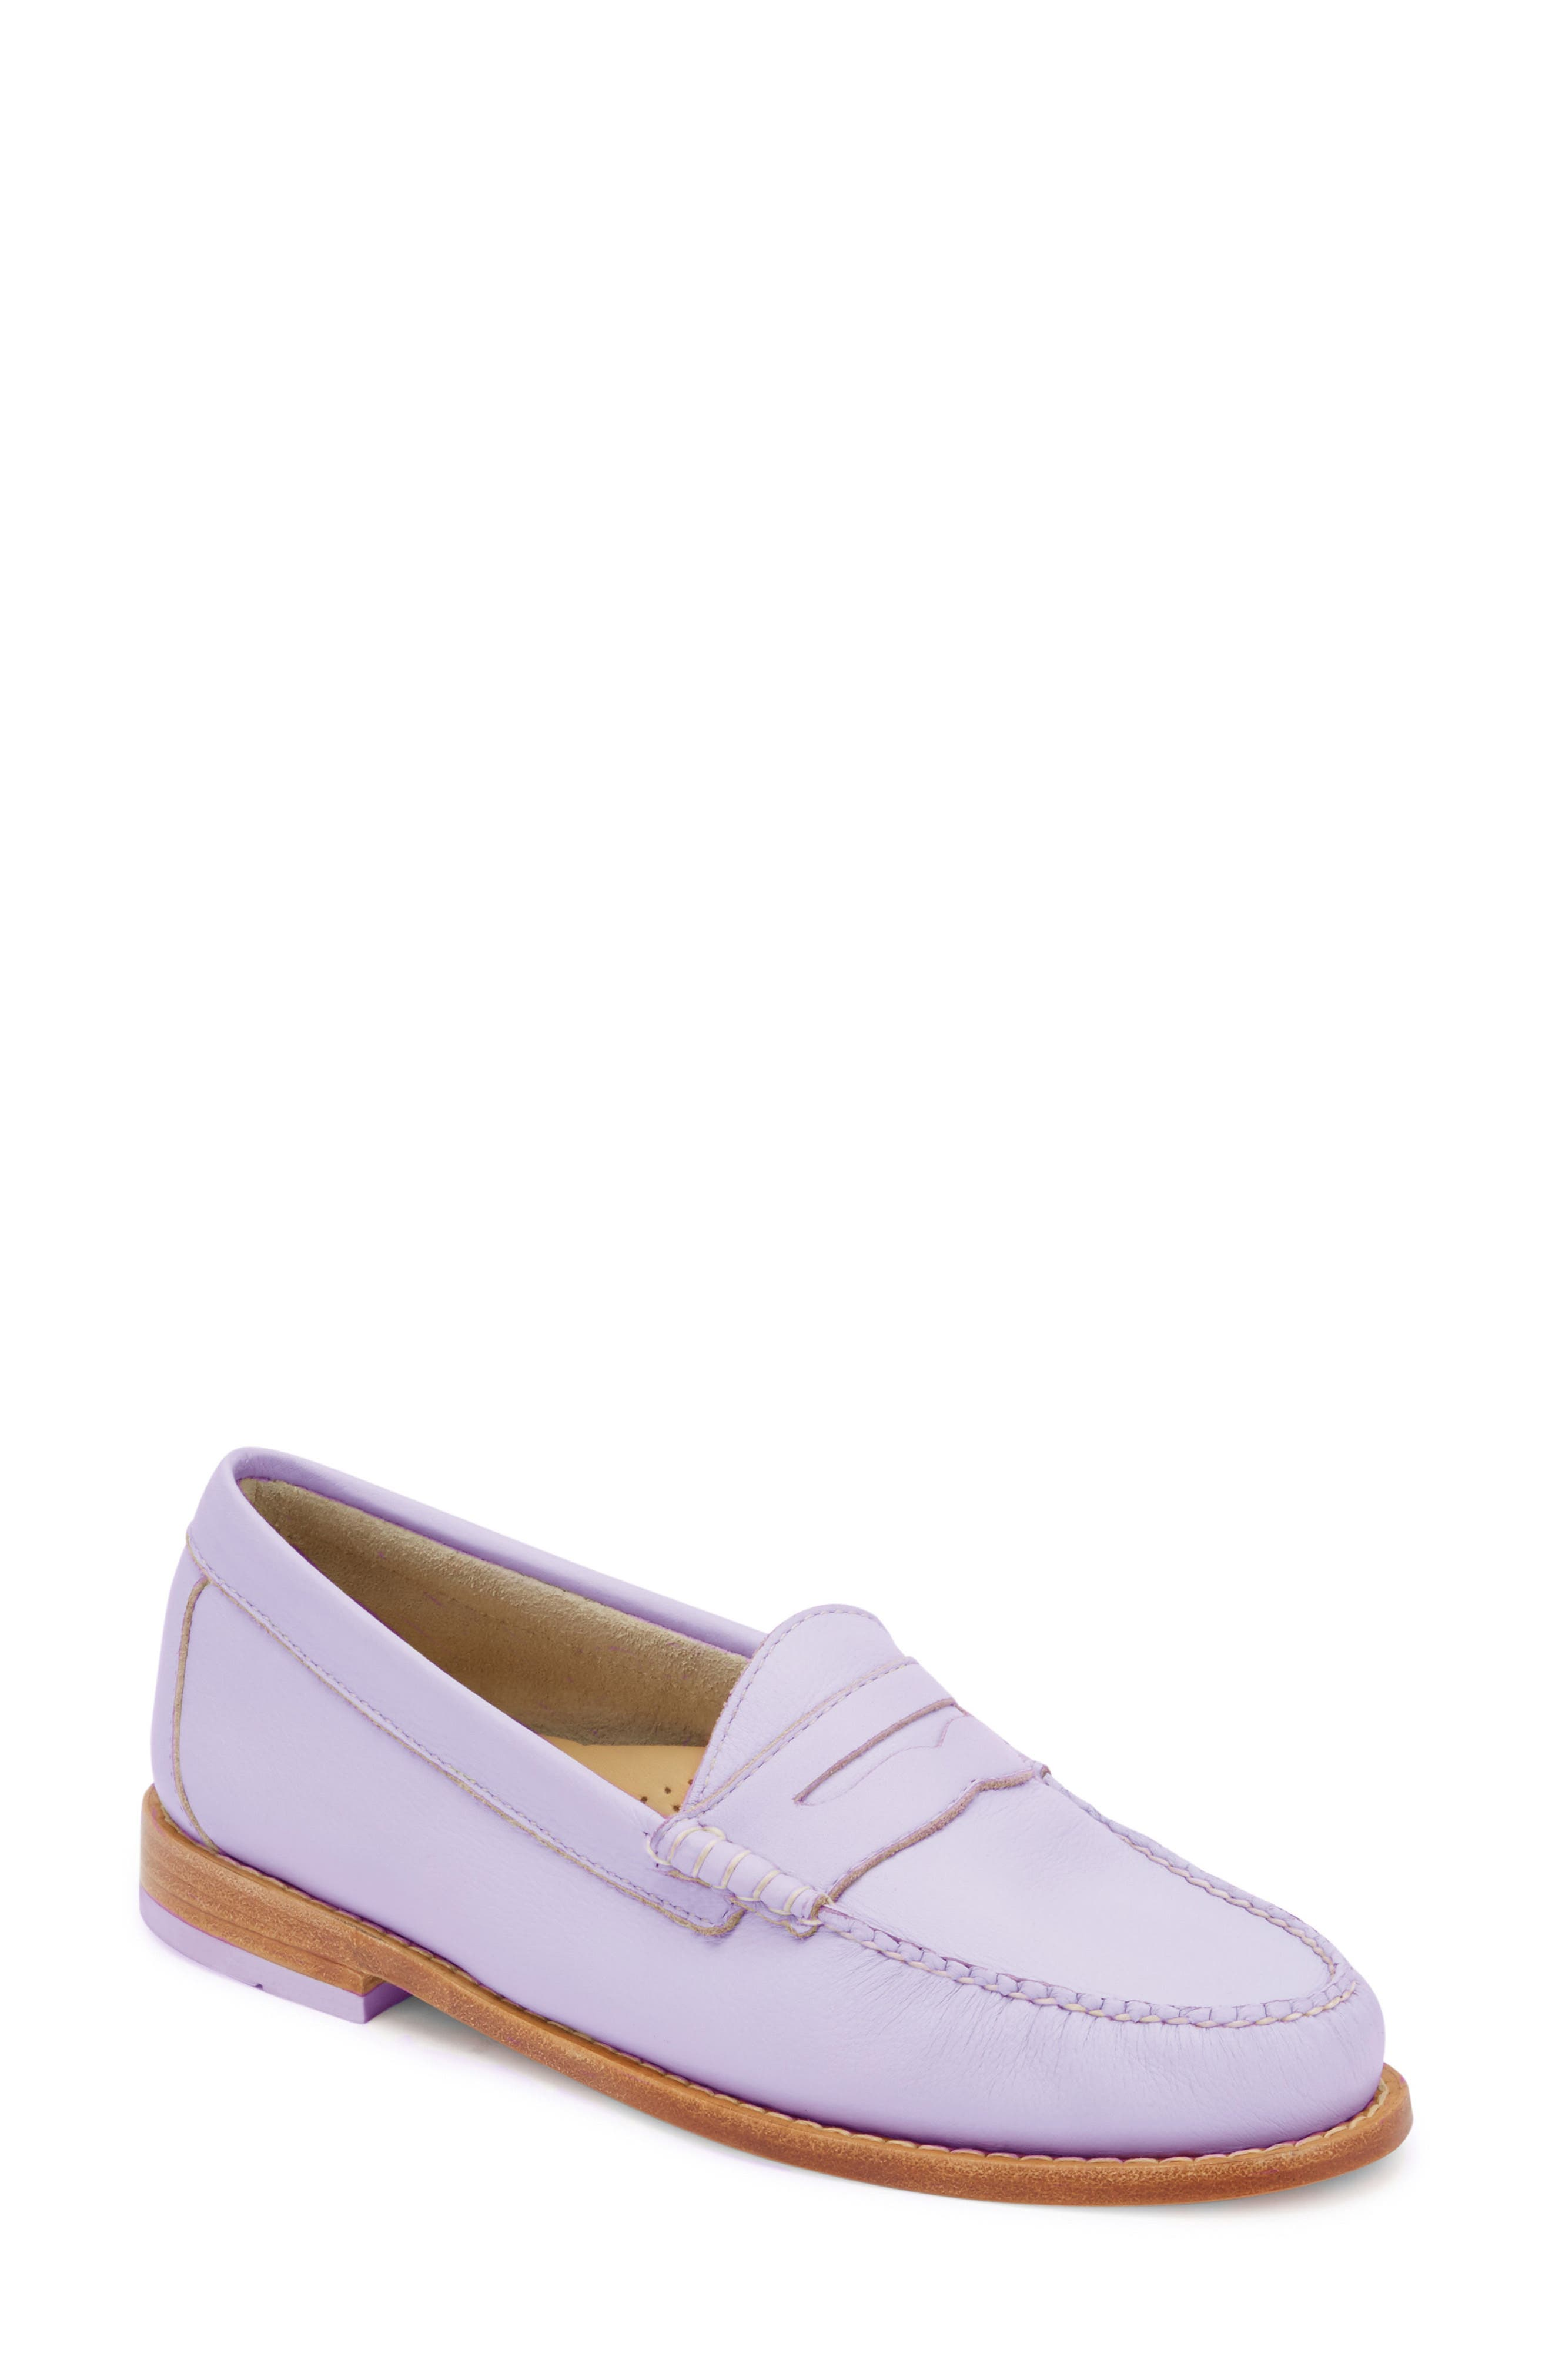 'Whitney' Loafer,                             Main thumbnail 1, color,                             Lilac Leather